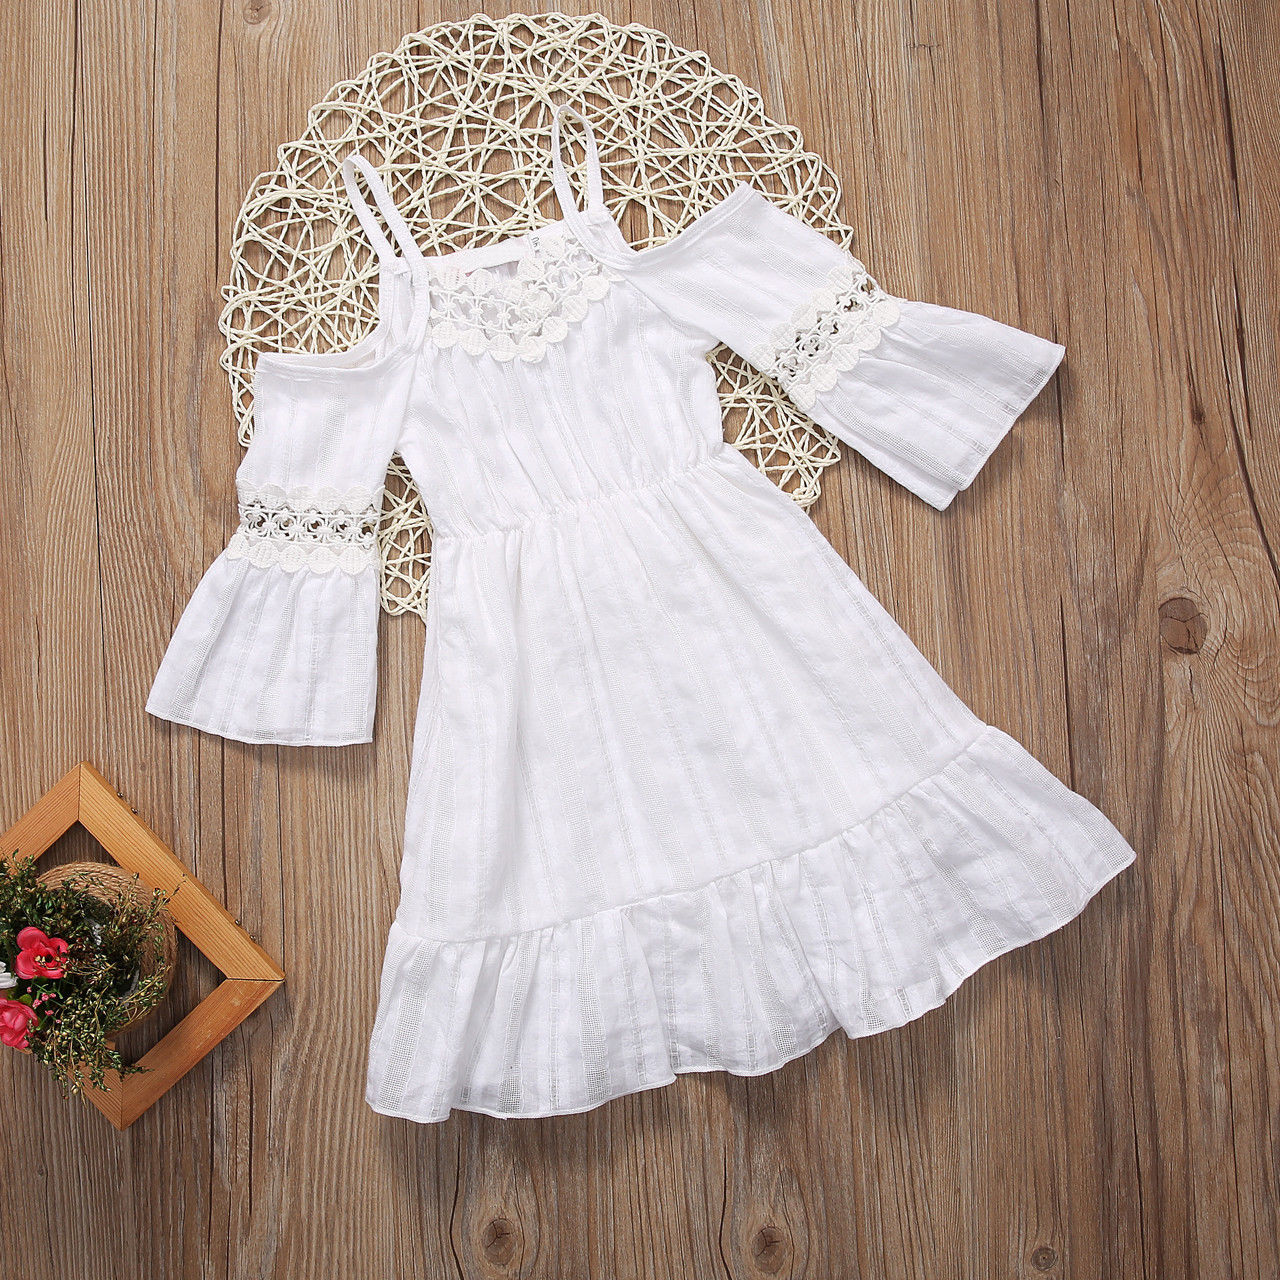 Flower Girl Dress Princess Dresses Kid Baby Party Wedding Pageant Tulle Tutu Children Clothing Summer Girls Costume White girls princess party layered tutu dress girl summer wedding dress children rose flower dresses baby kids clothing sundress t162